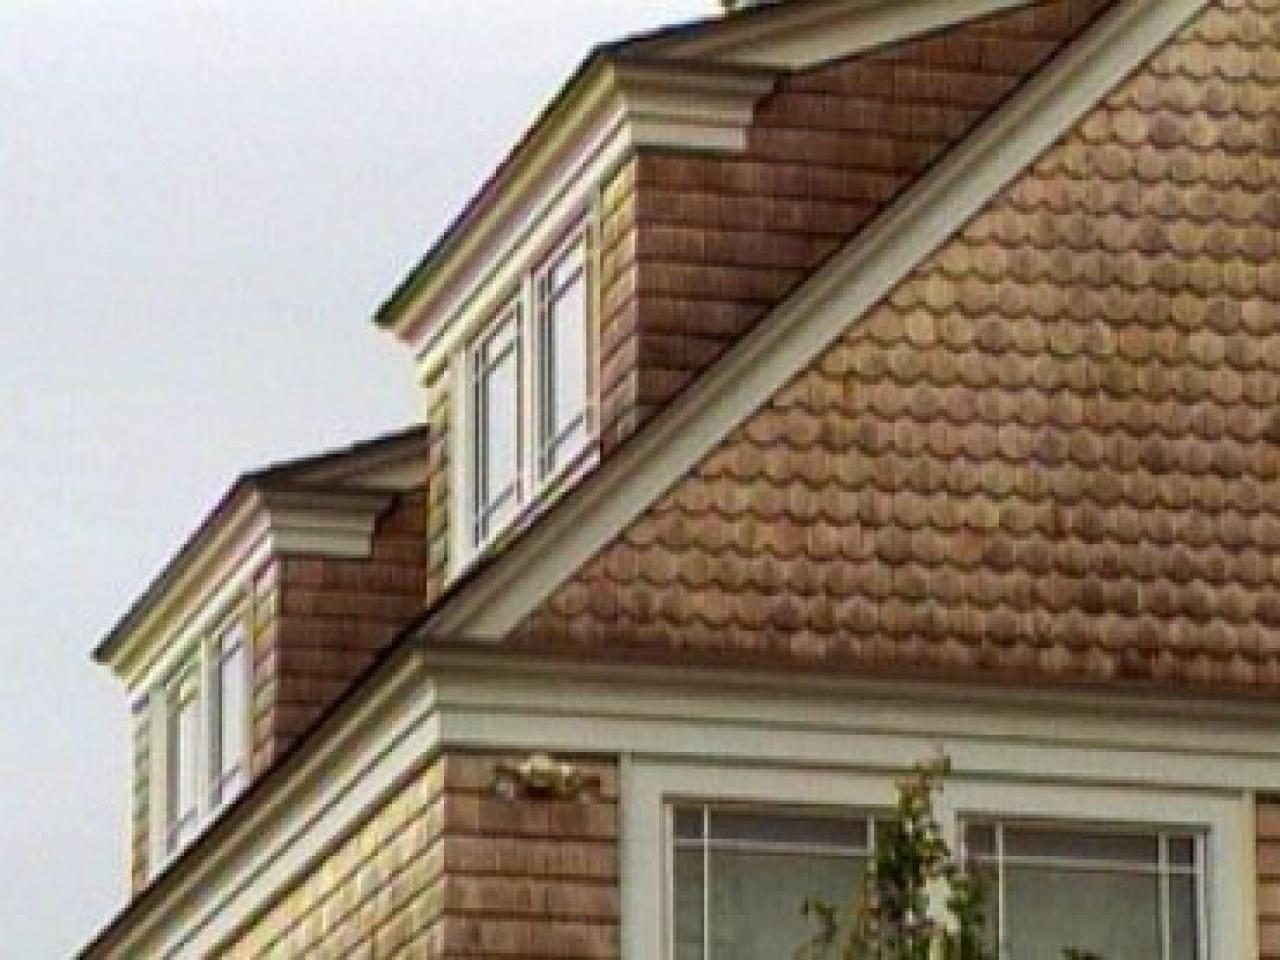 House Siding Types The Hippest Pics